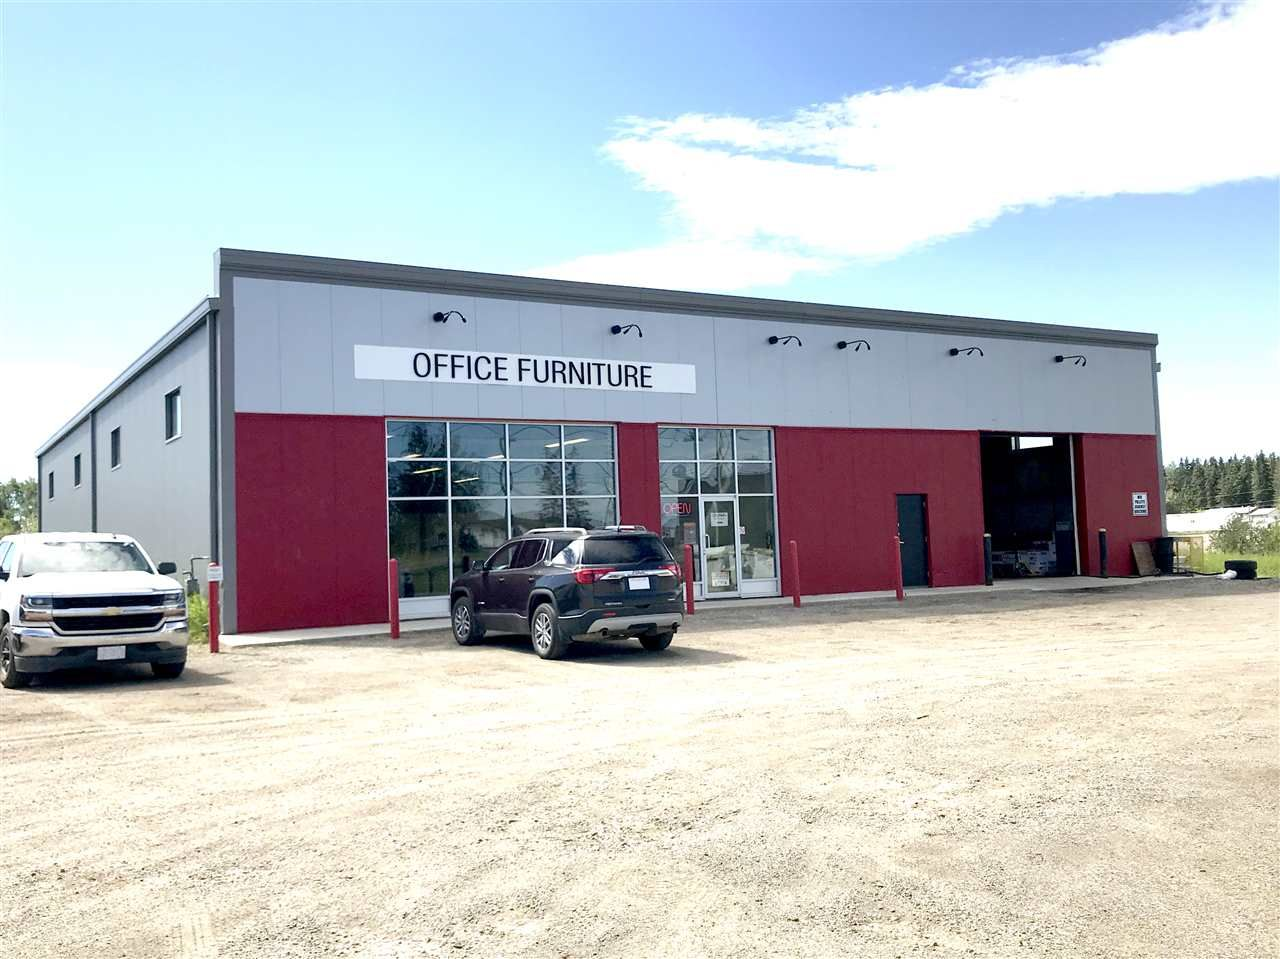 Main Photo: 6419 AIRPORT ROAD: Commercial for sale : MLS®# C8020413